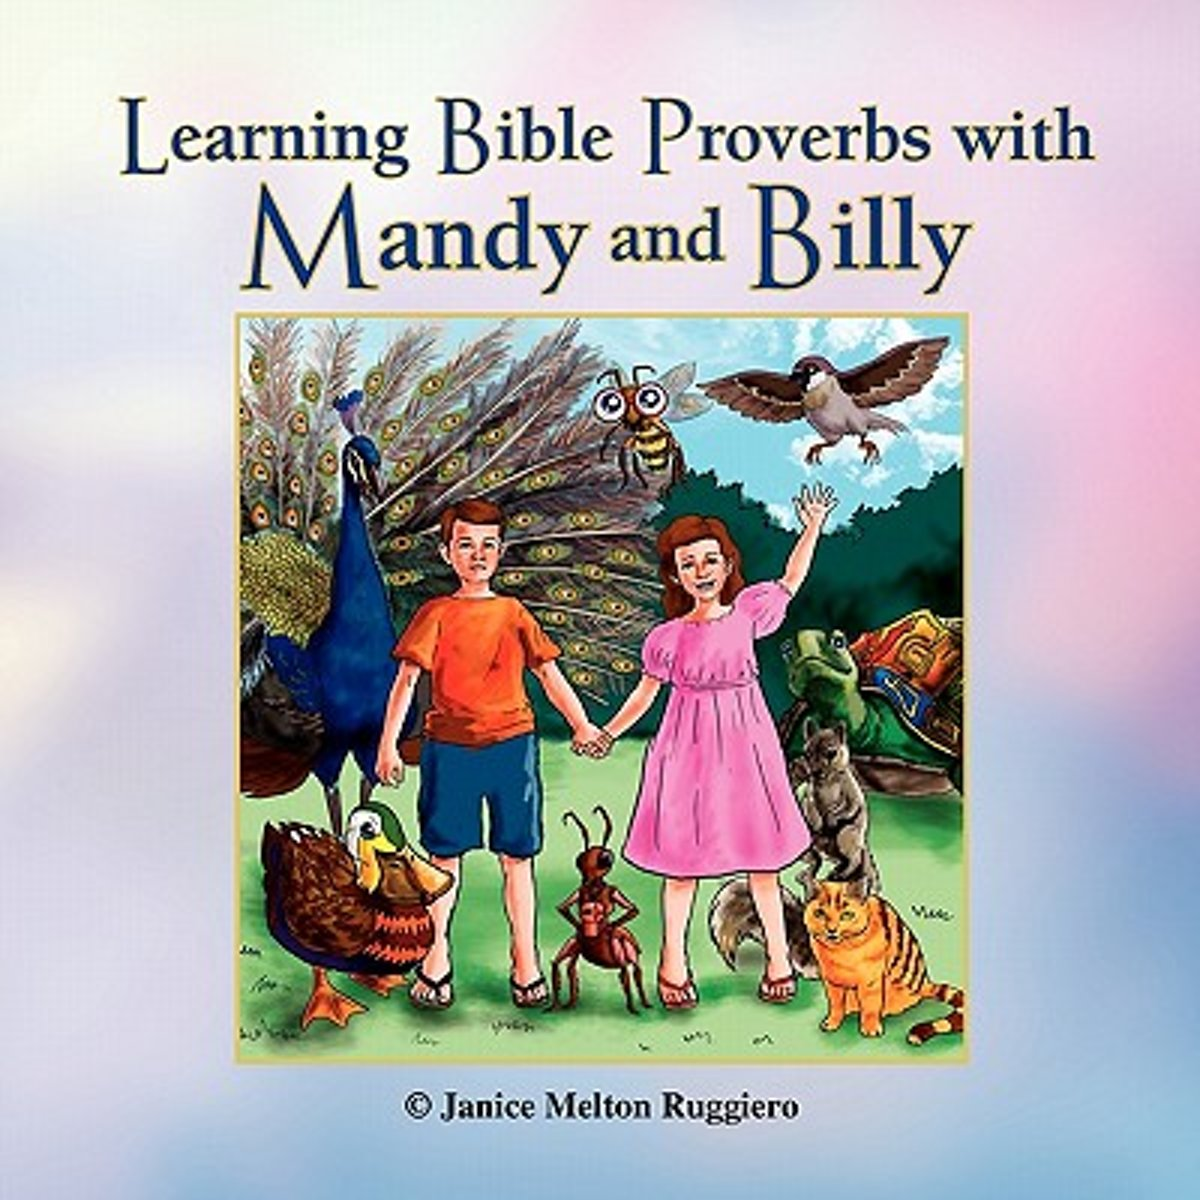 Learning Bible Proverbs with Mandy and Billy